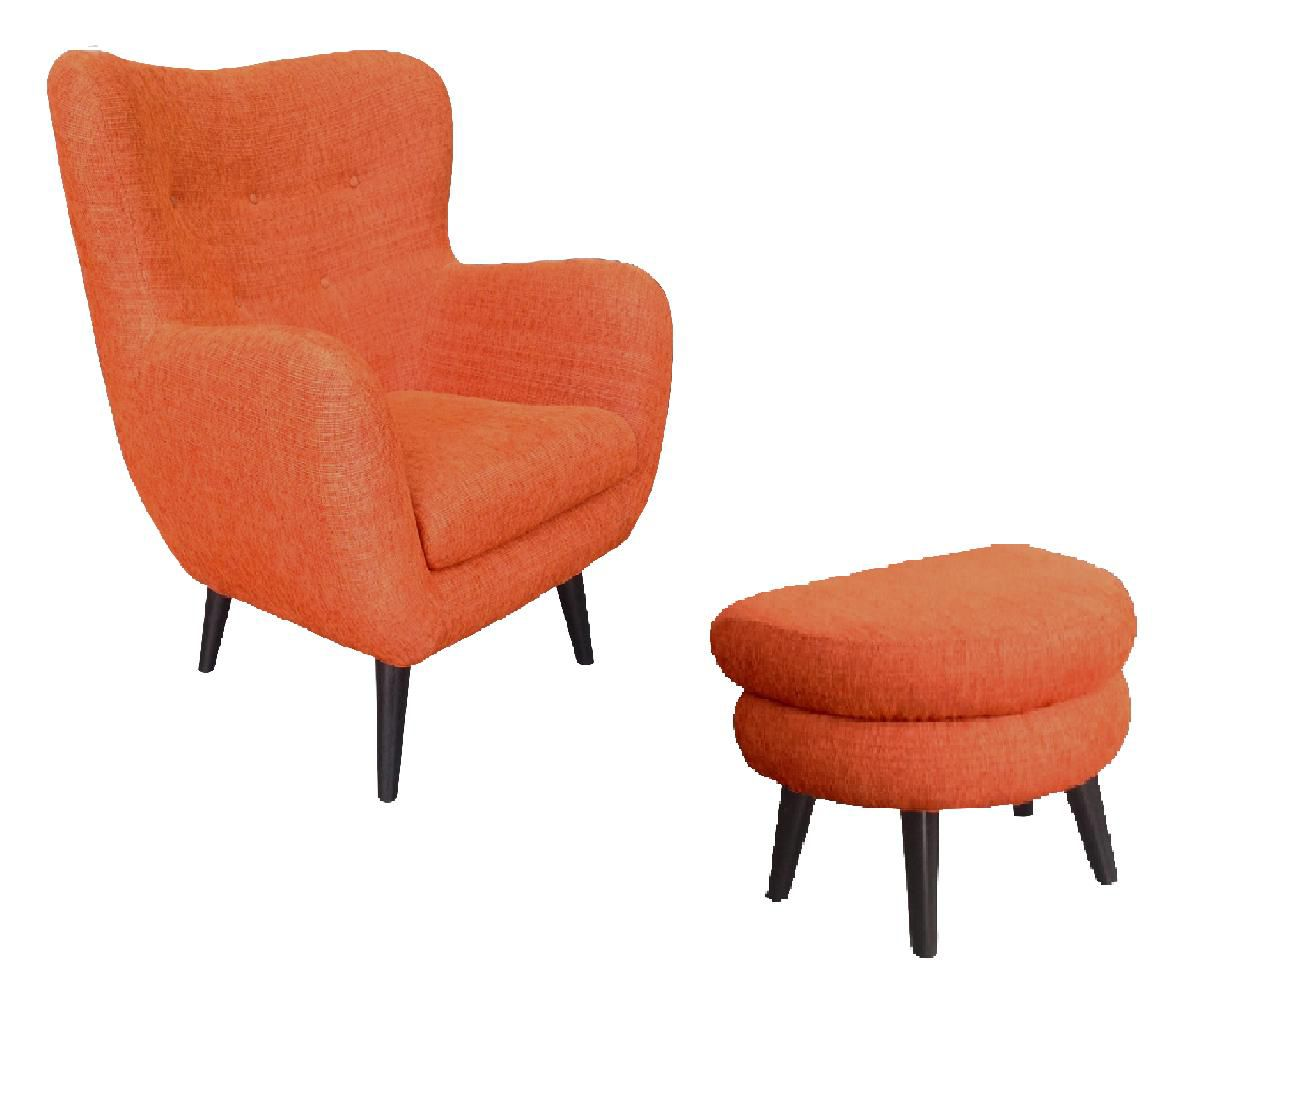 Otis Orange upholstery range